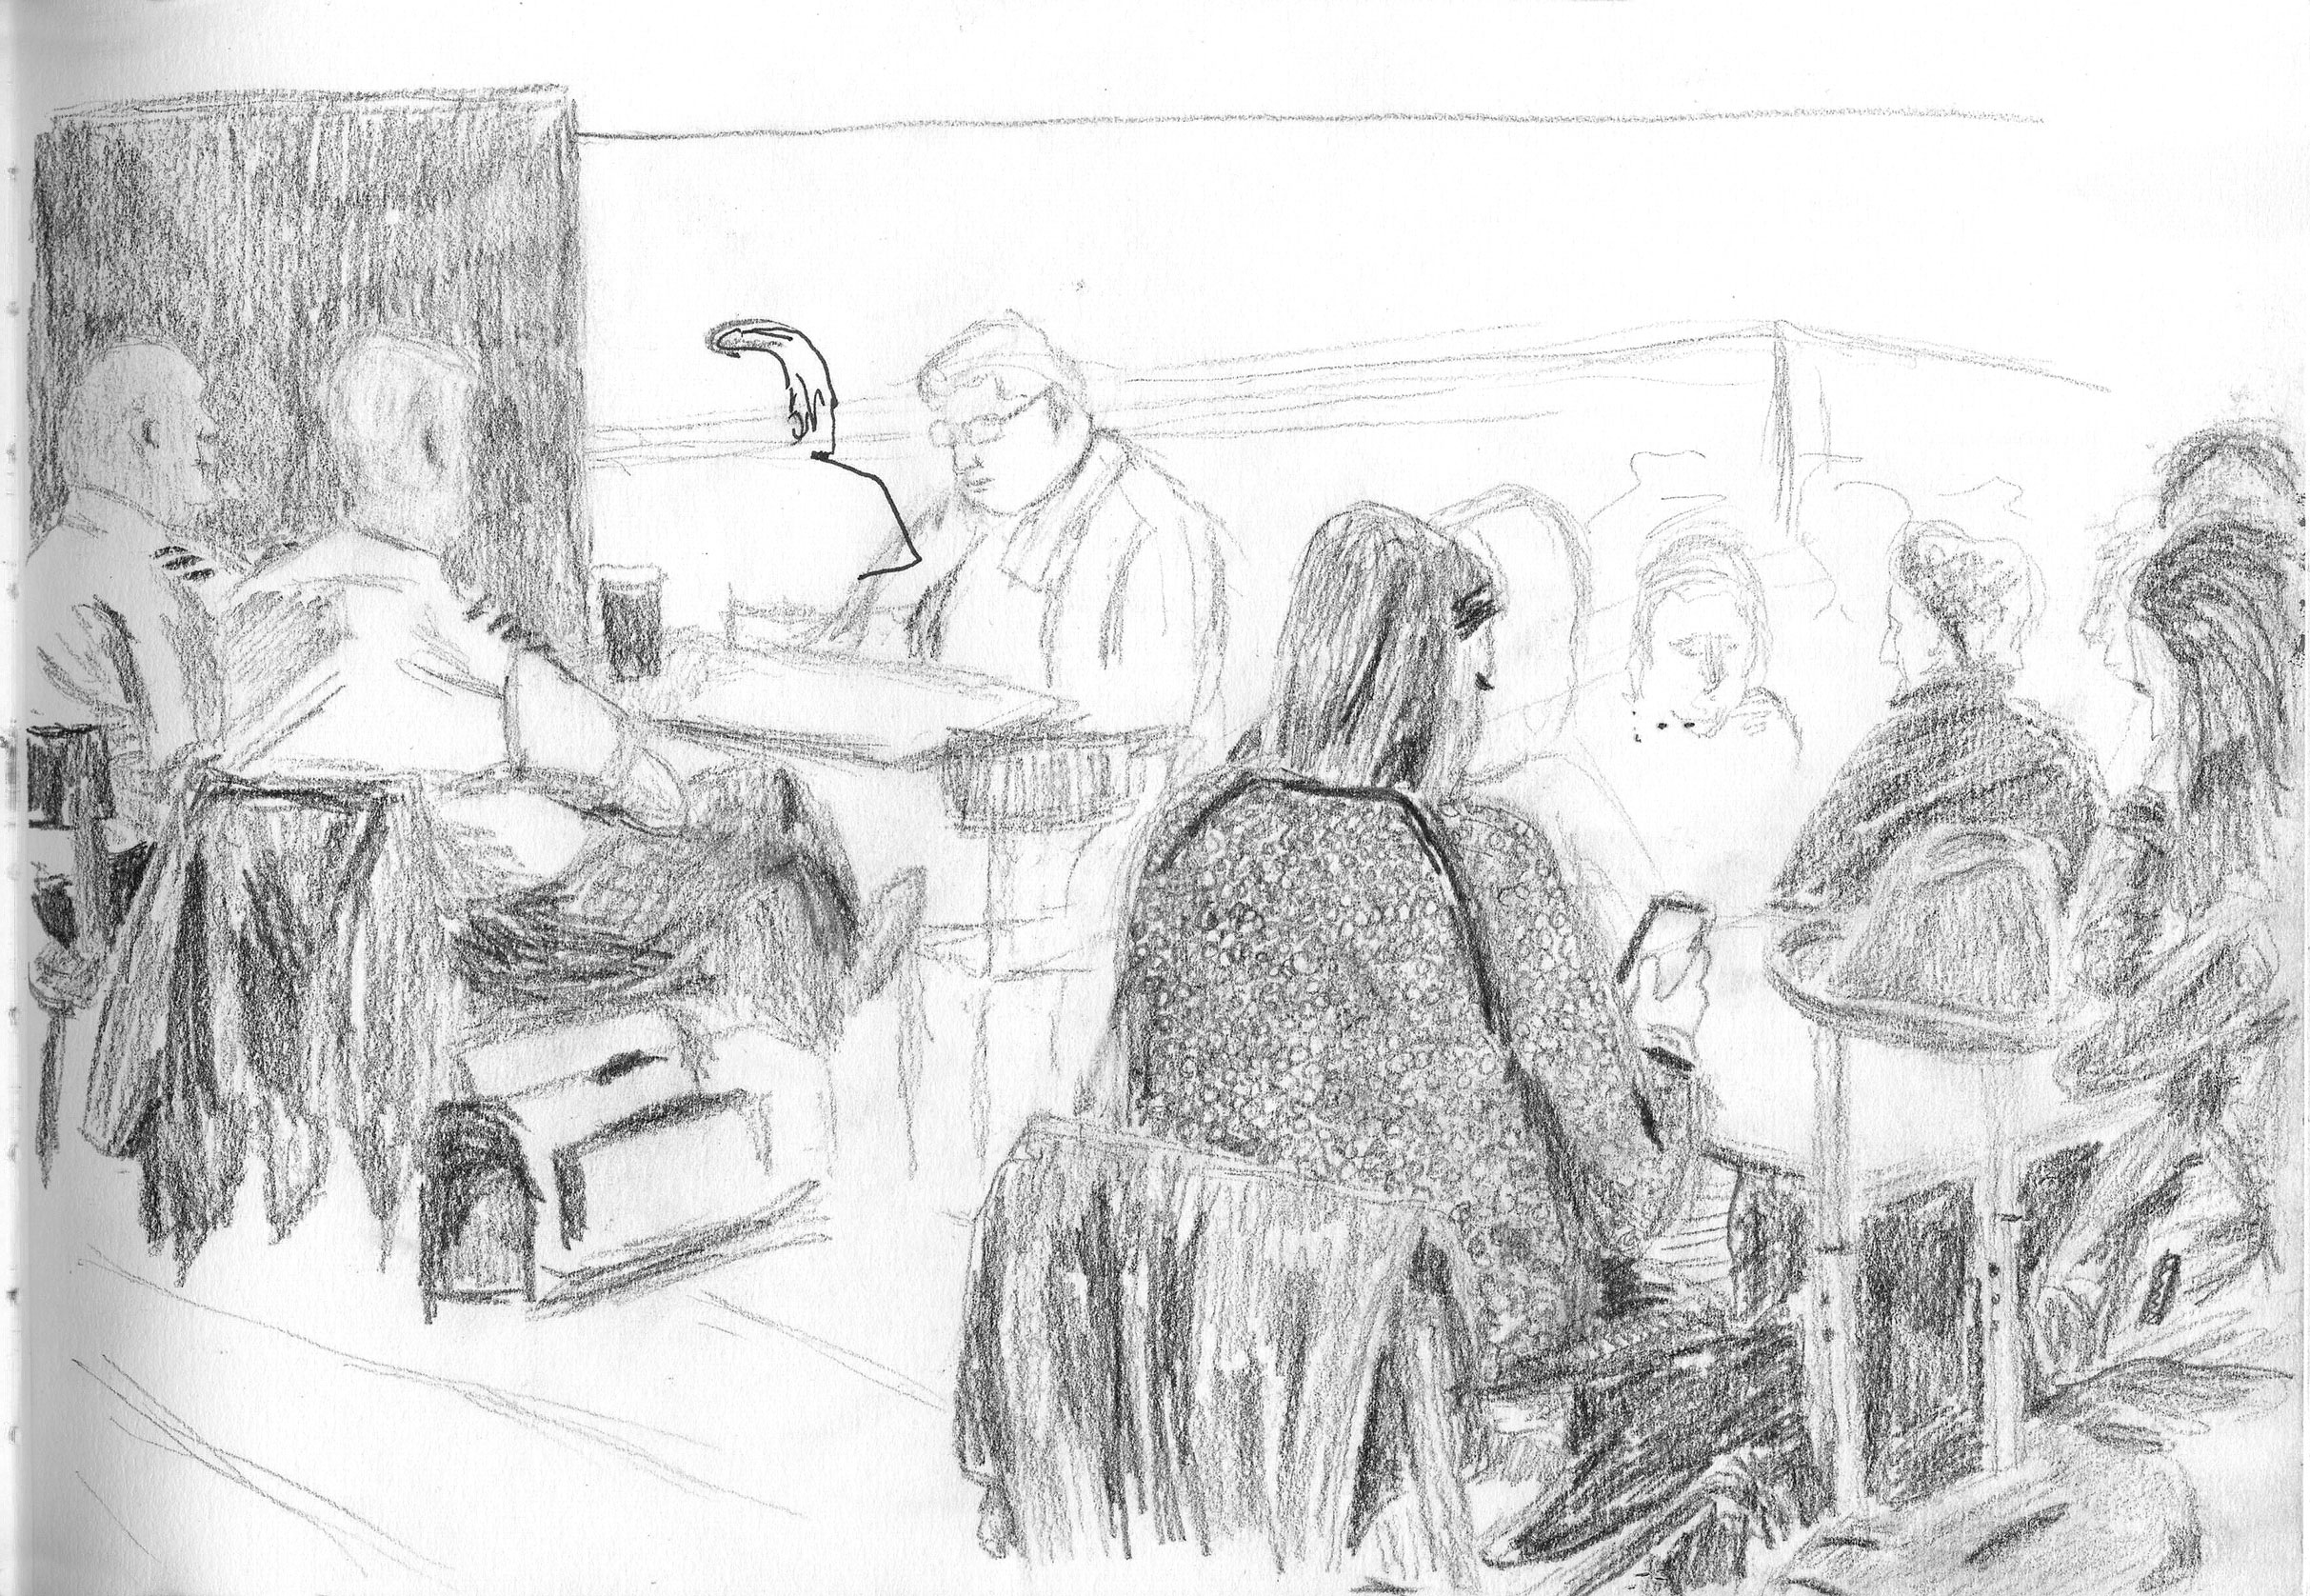 sketch at stansted airport by ellen vesters ma childrens book illustration